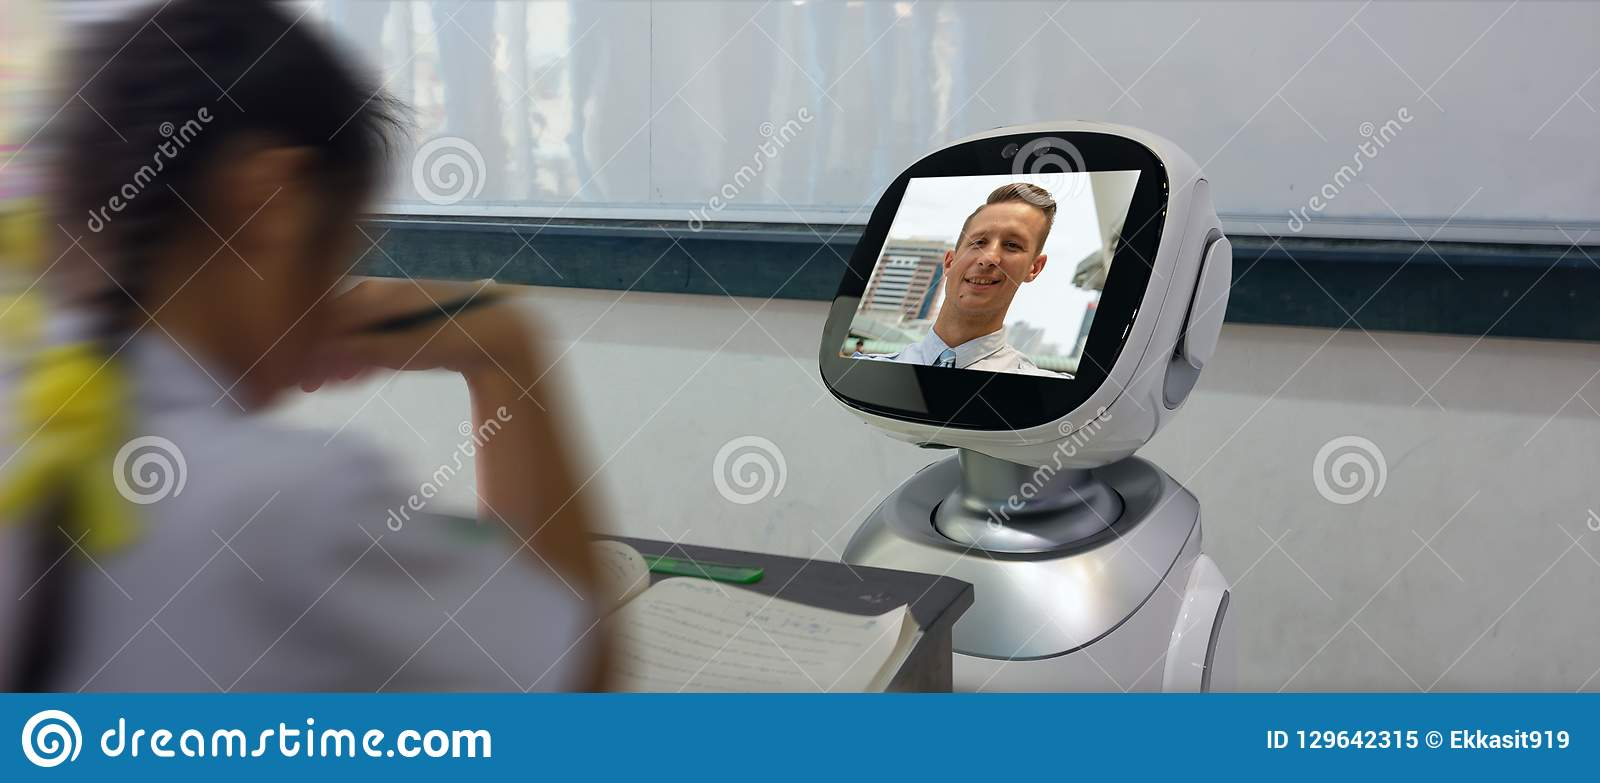 Smart education industry futuristic concept, robotic assistant with artificial intelligence program in future use for teaching stu